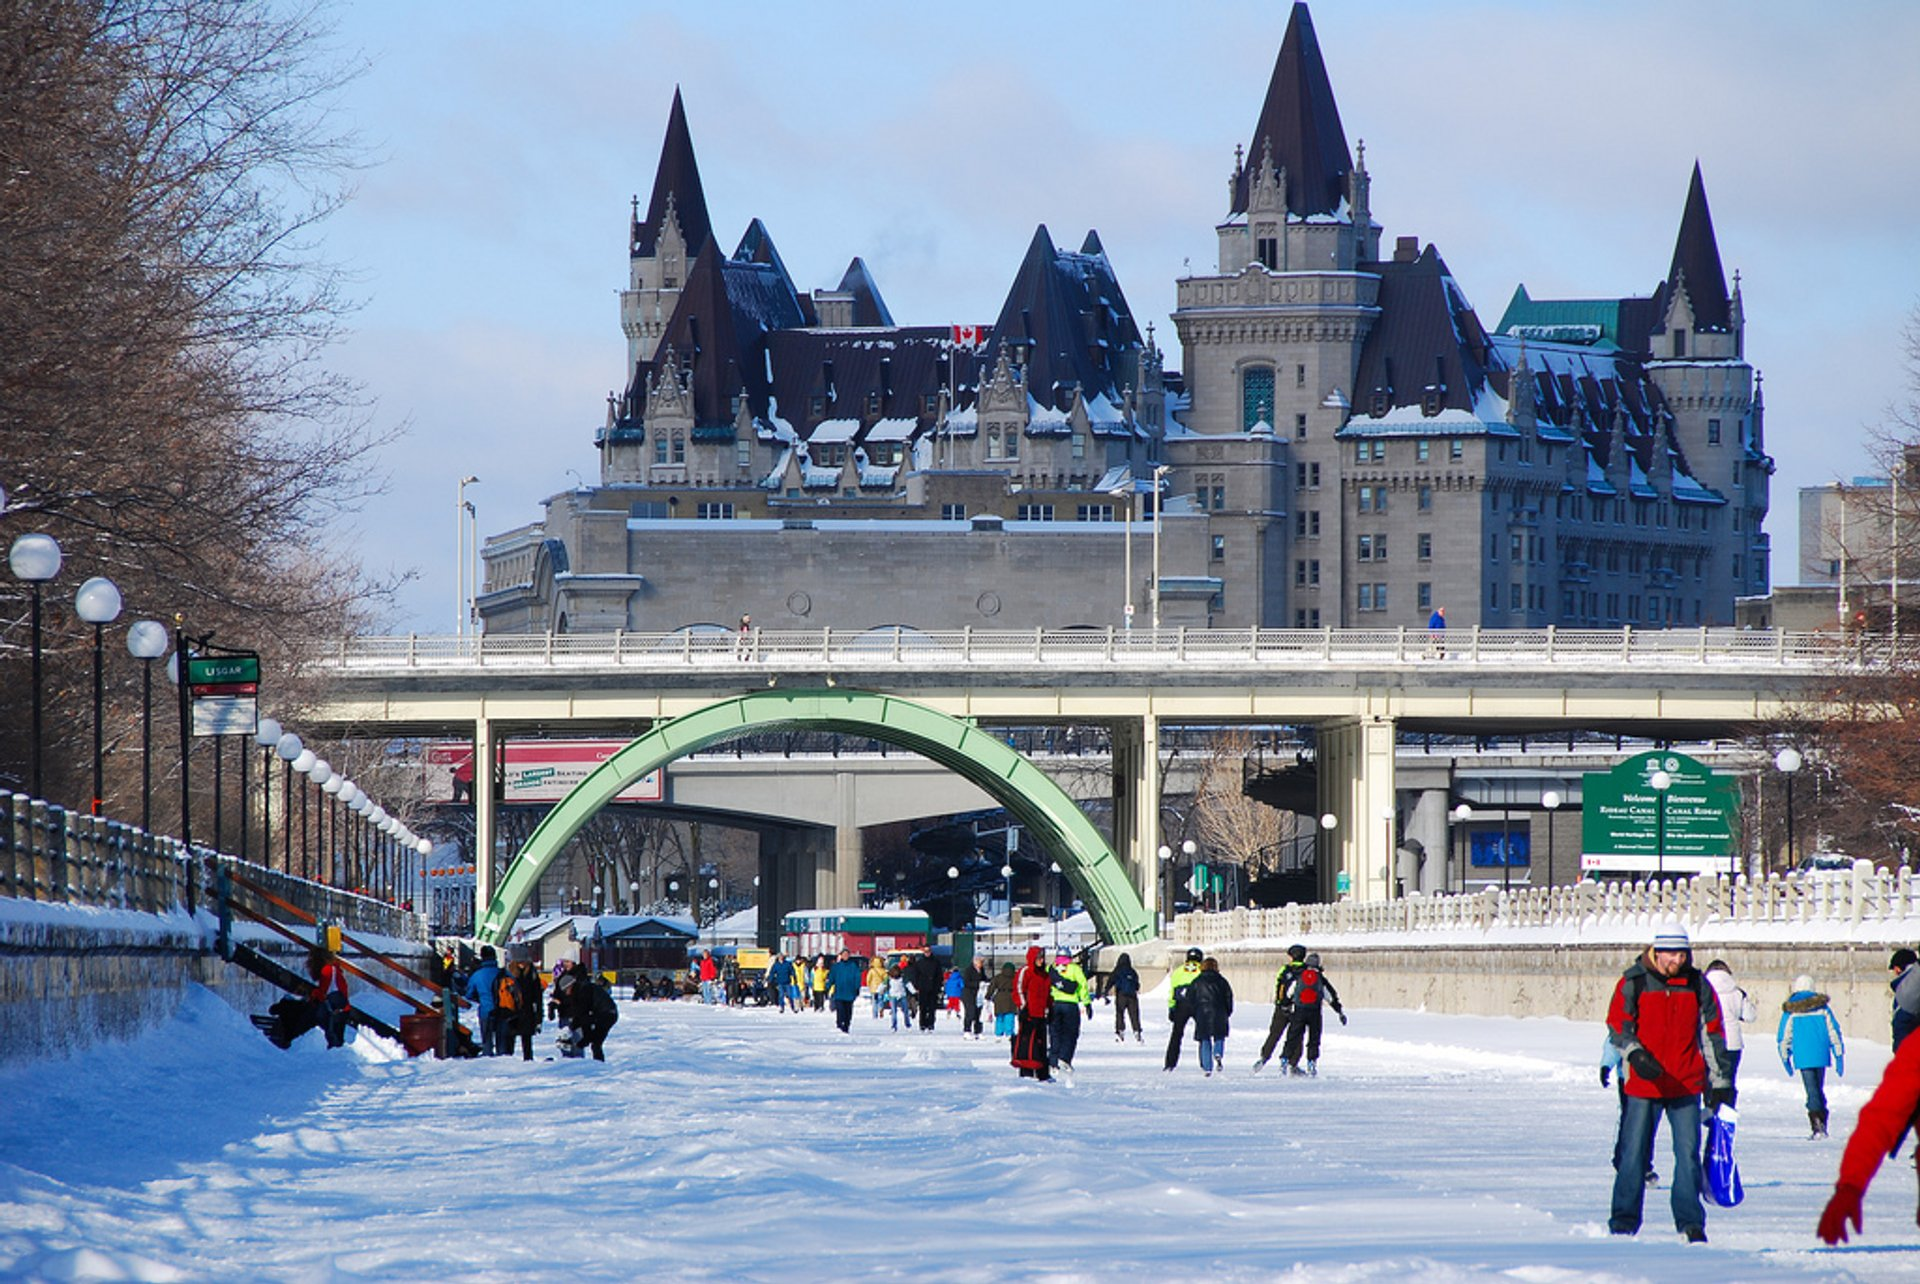 Rideau Canal Skating Season in Ontario - Best Season 2020